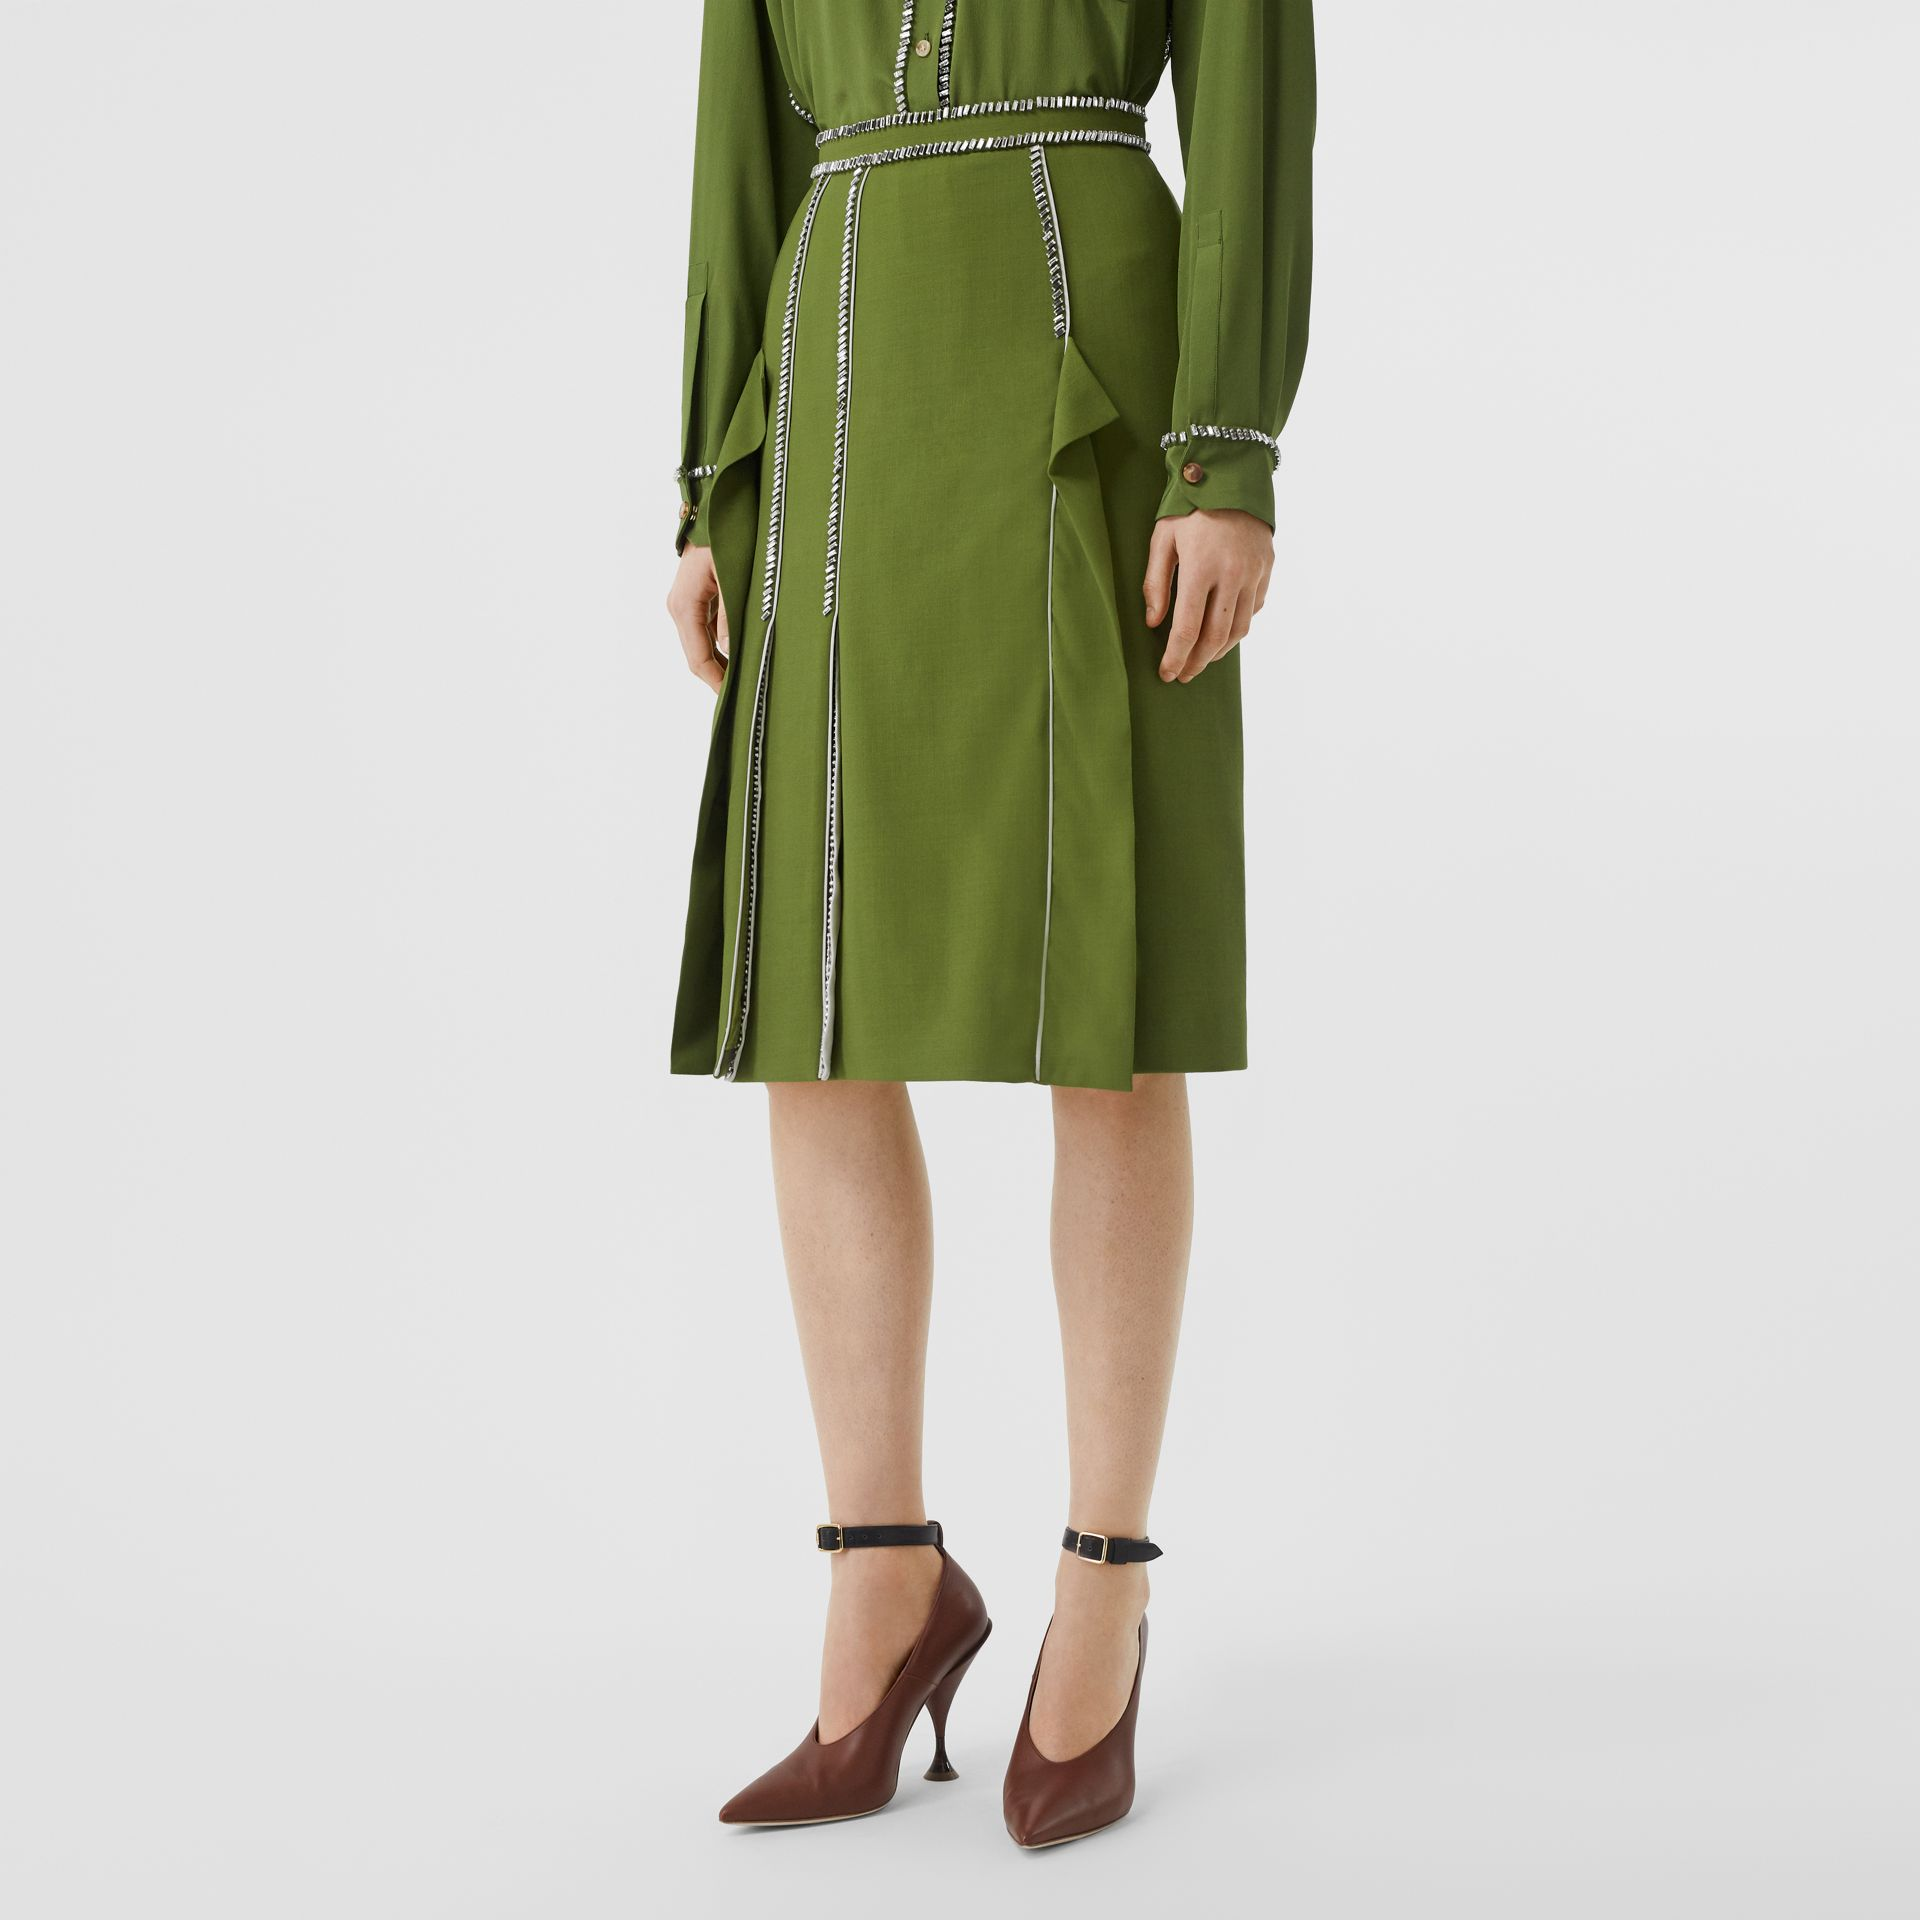 Crystal Detail Panelled Wool Crepe A-line Skirt in Cedar Green - Women | Burberry United States - gallery image 4